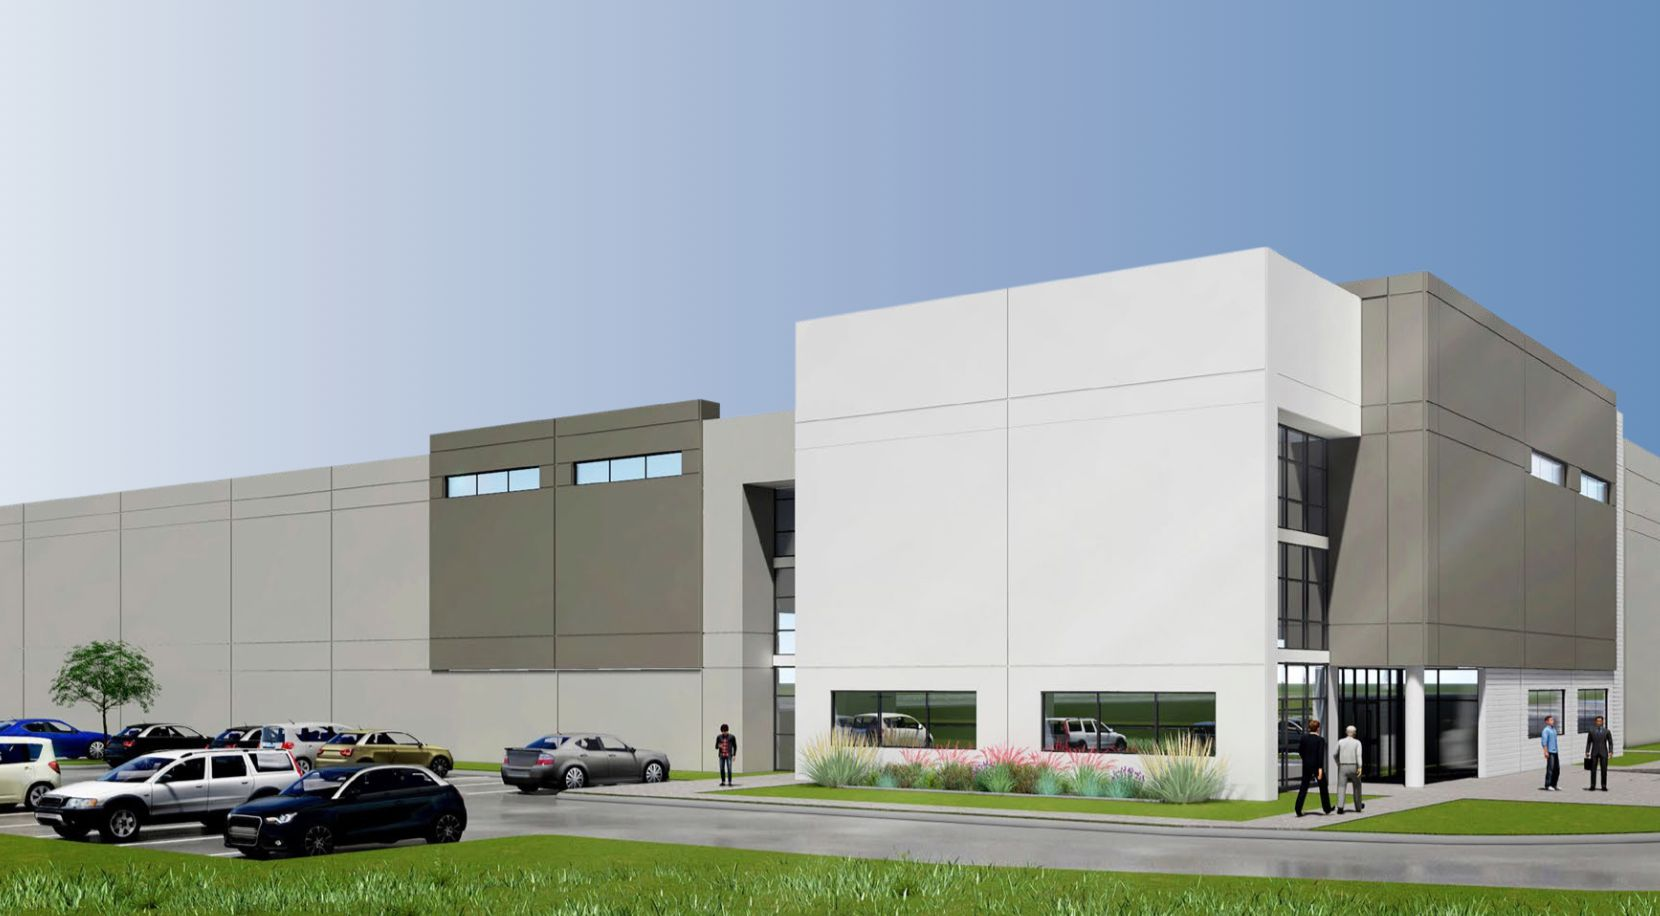 Developer Hillwood Investment Properties is building the Commerce 635 business park in Balch Springs.